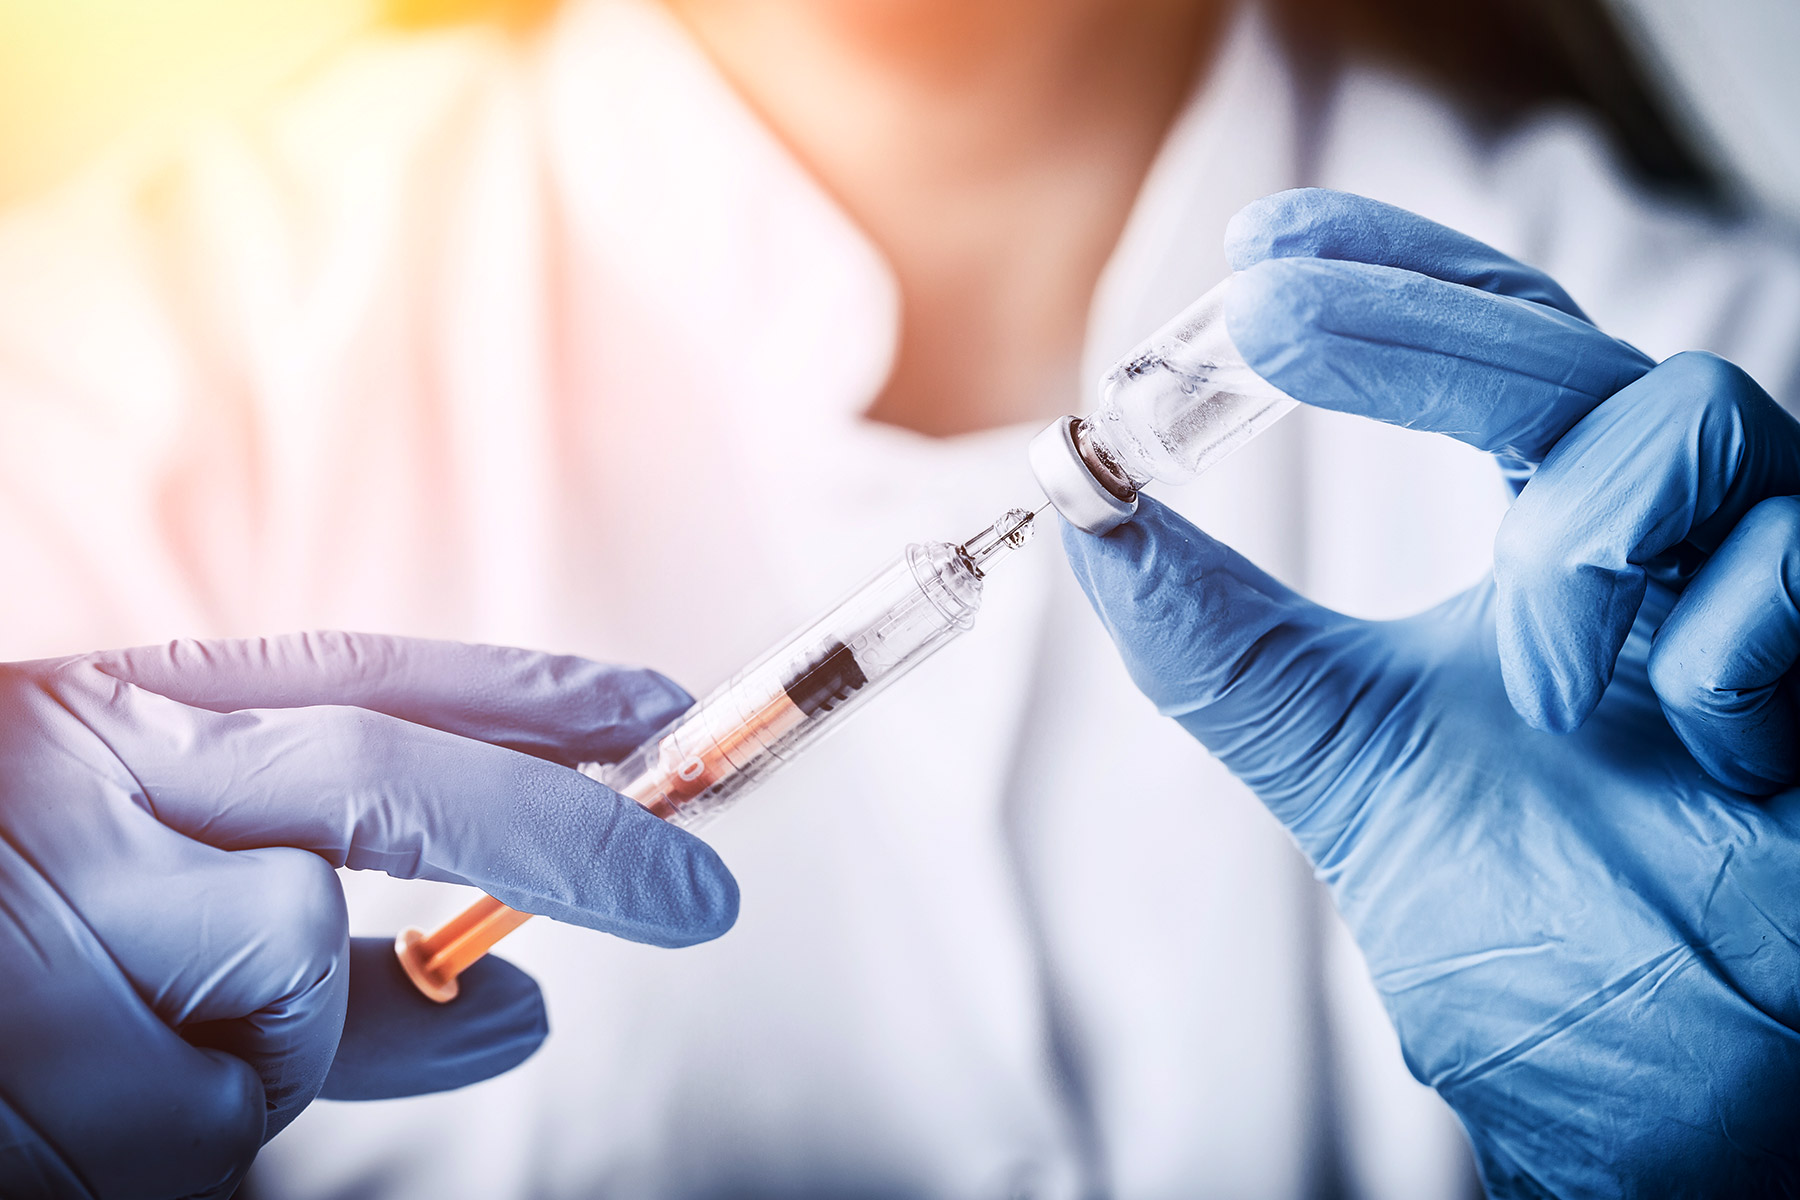 COVID Vaccine Supply Limited, Distribution Unclear